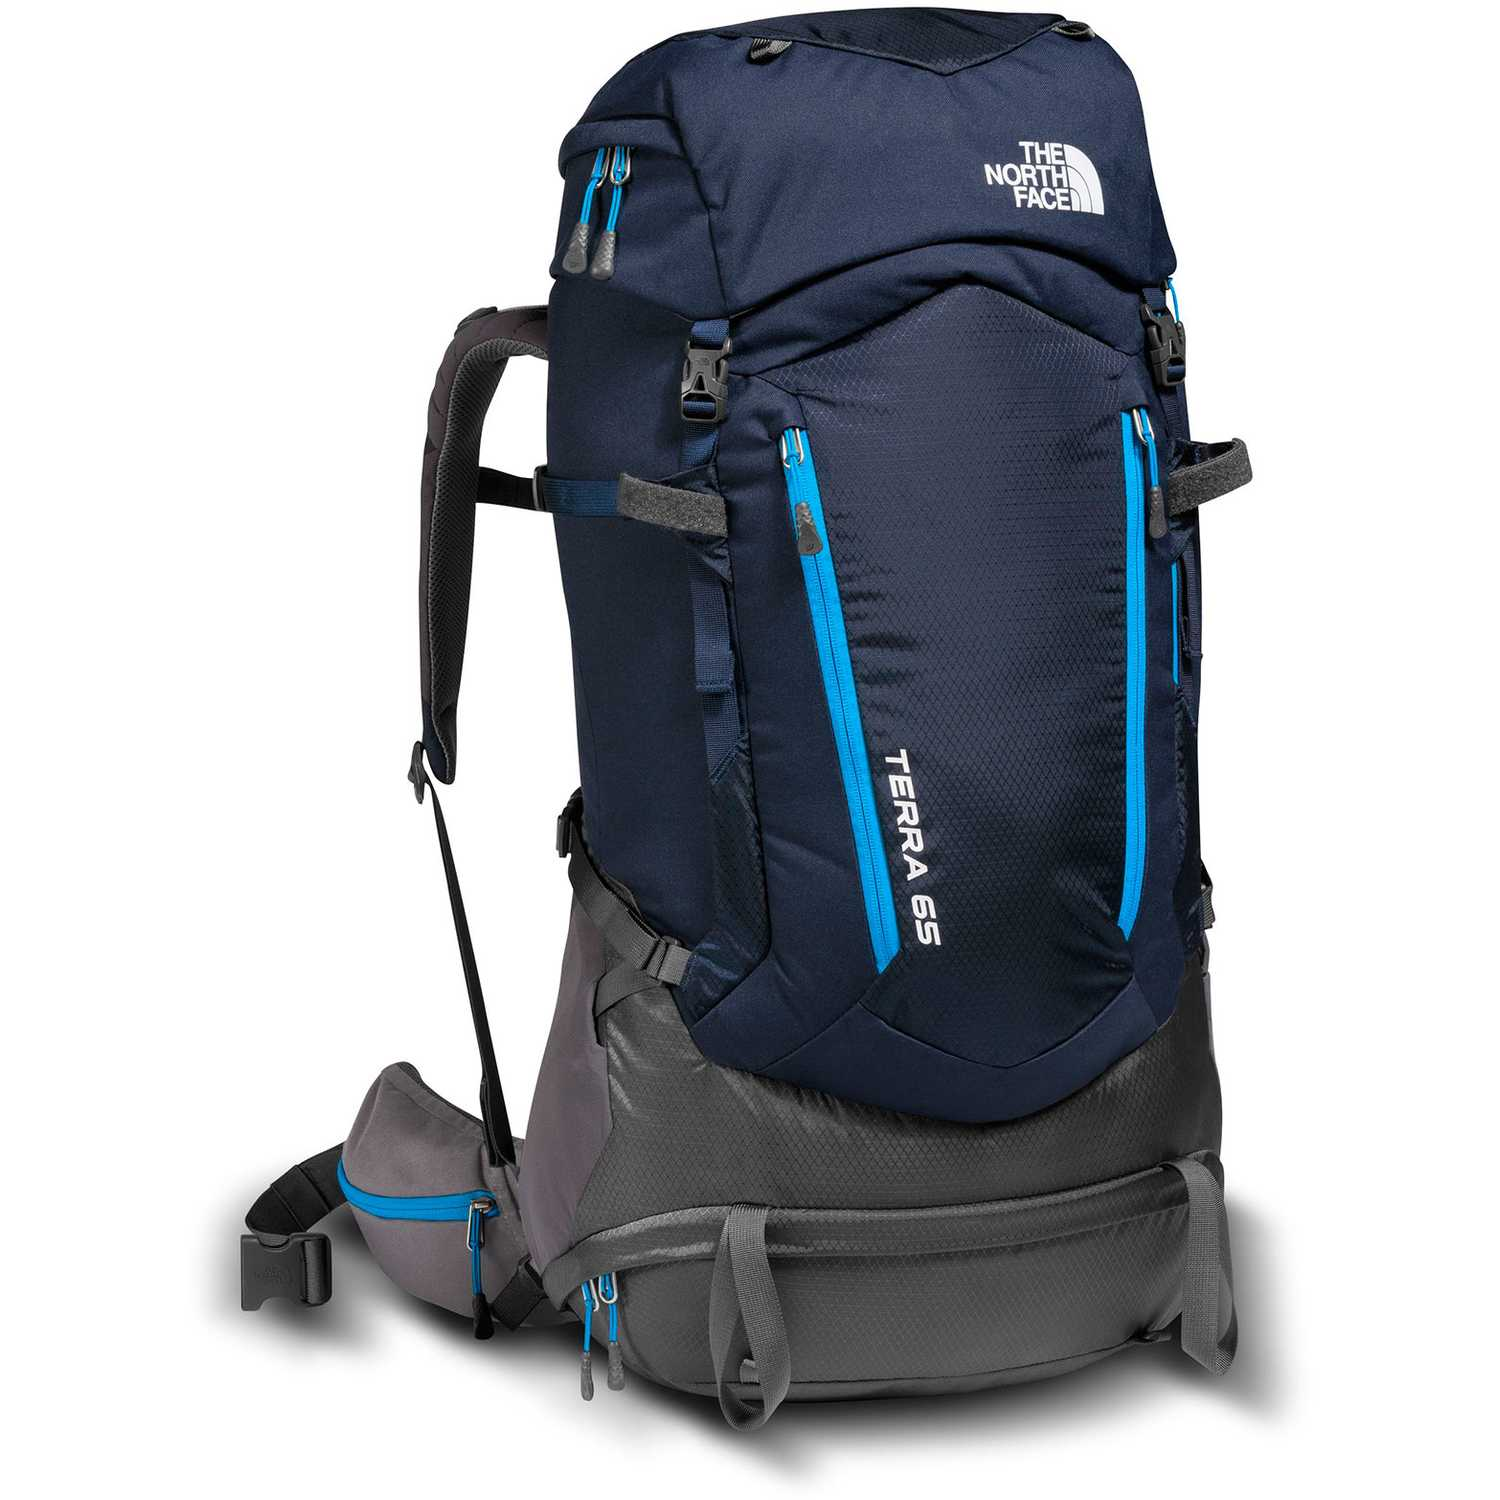 Mochilas de Hombre The North Face Navy terra 65